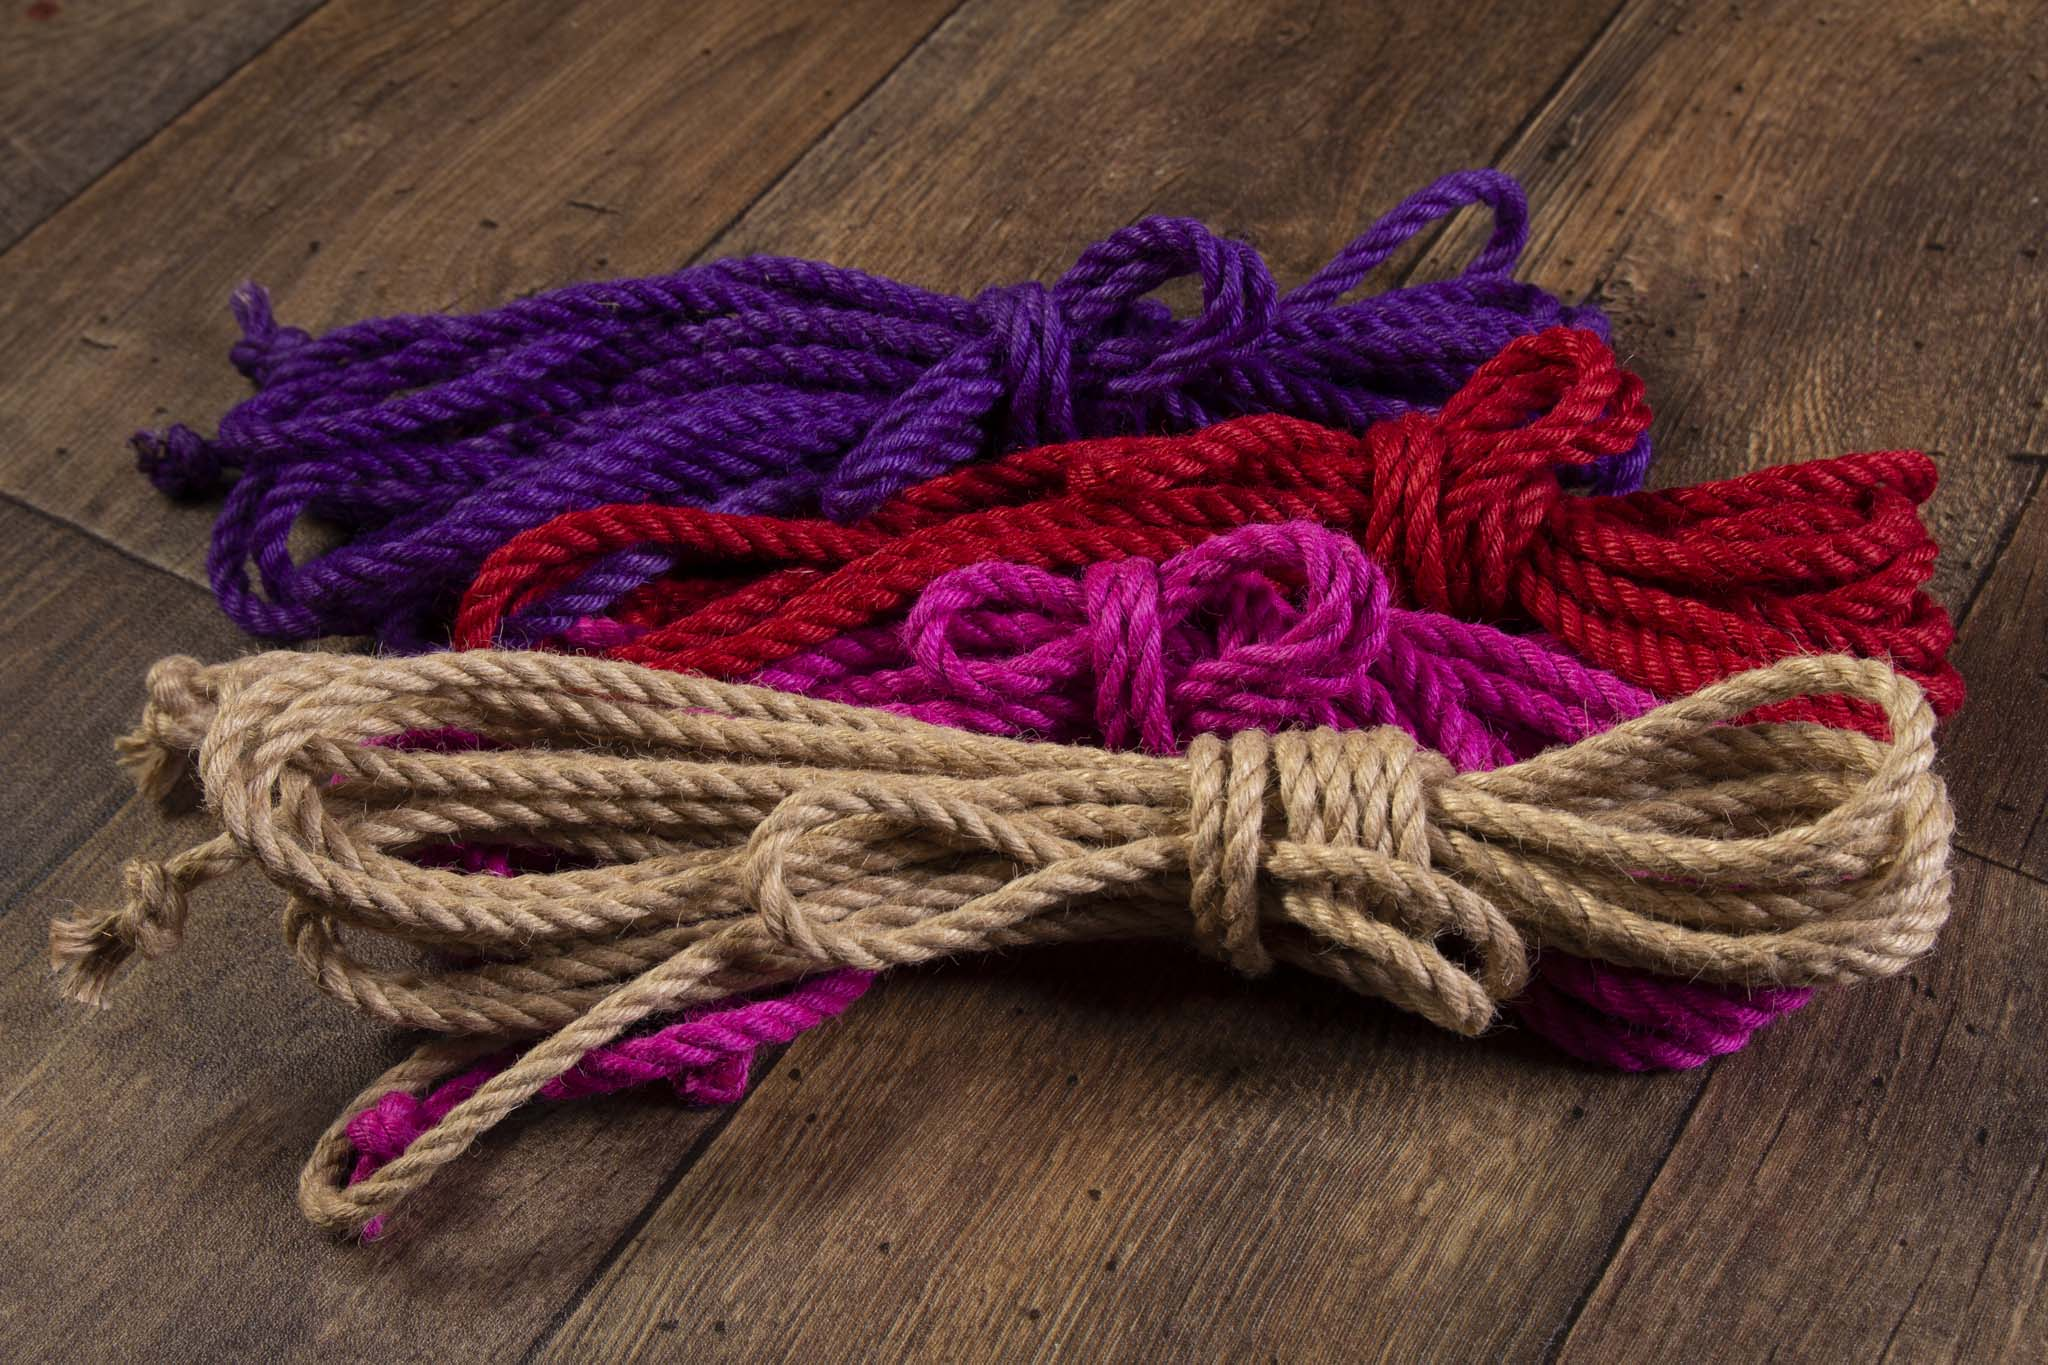 Purple, pink, red and natural 6mm Jute rope for Shibari / Kinbaku